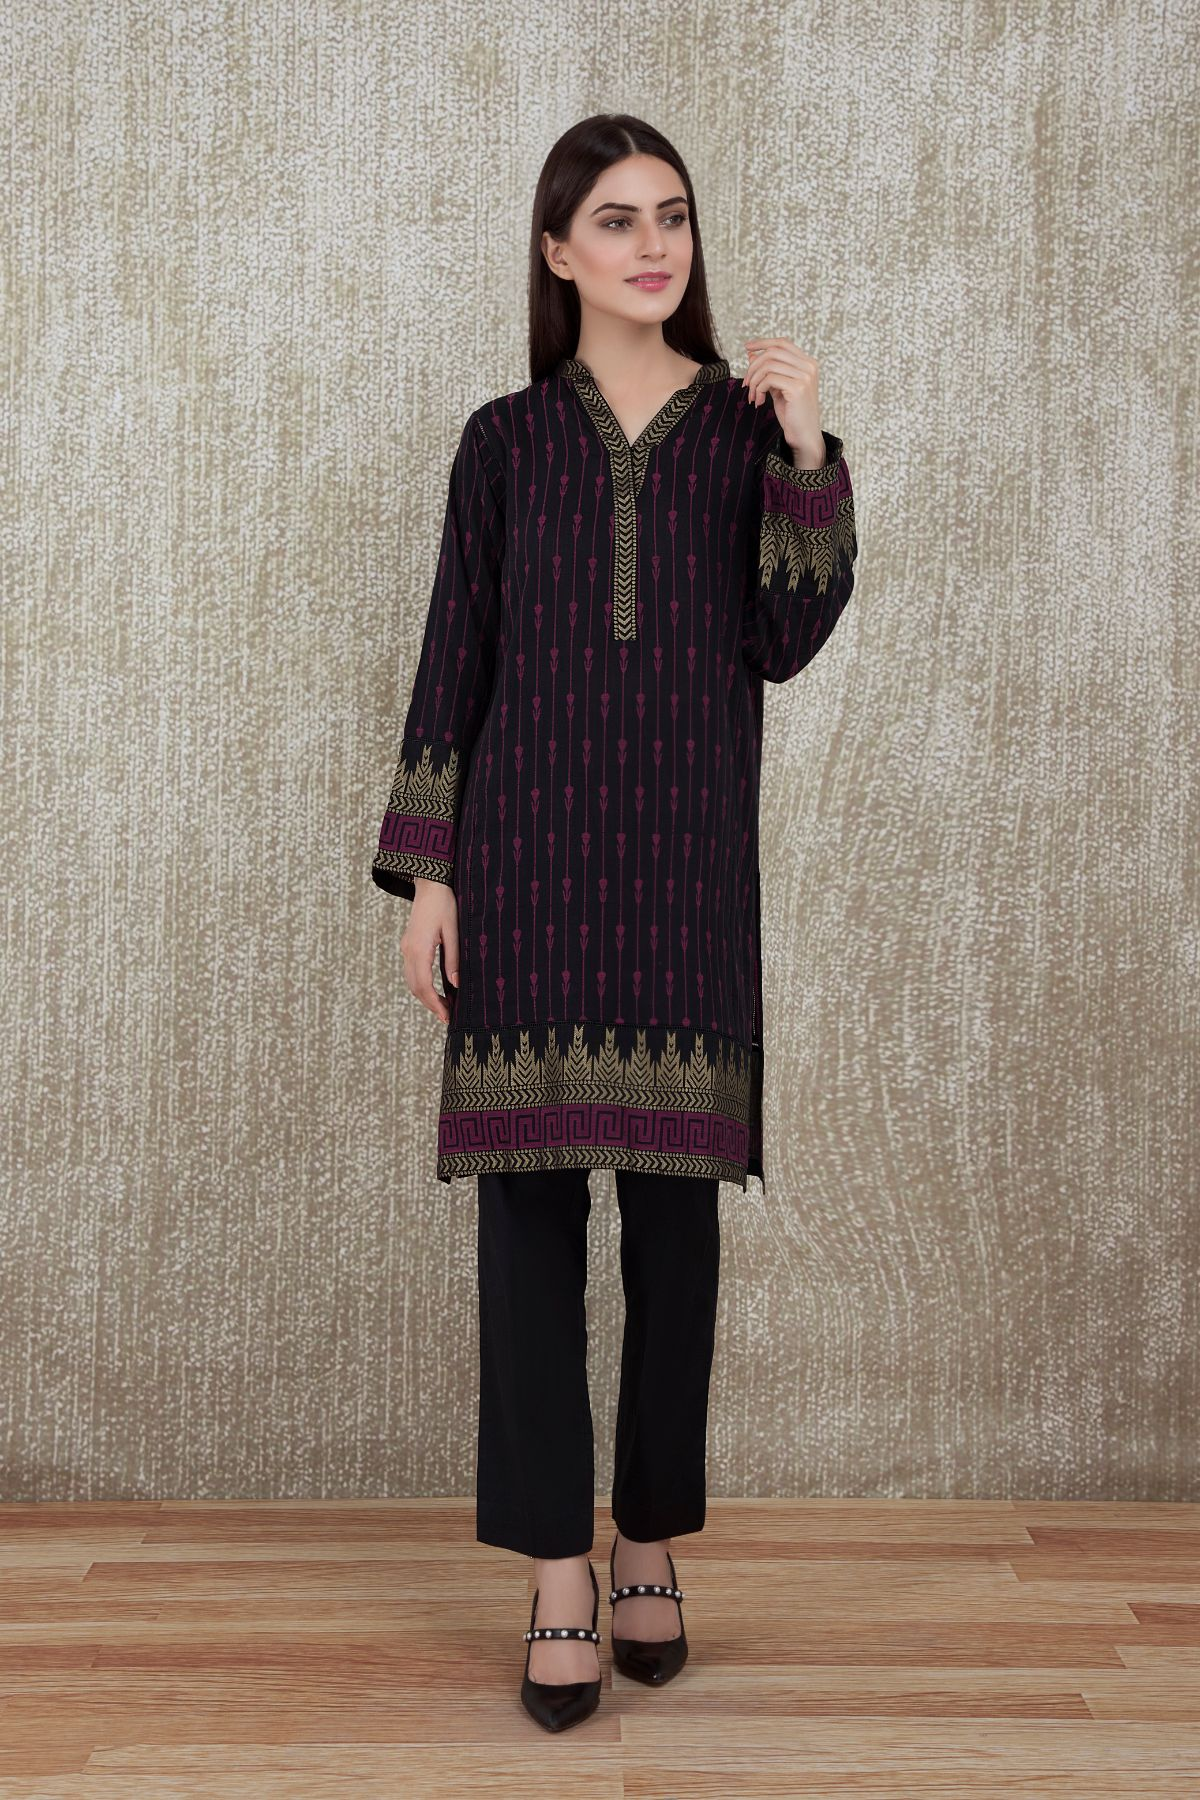 1PC Casual dress Chinyere